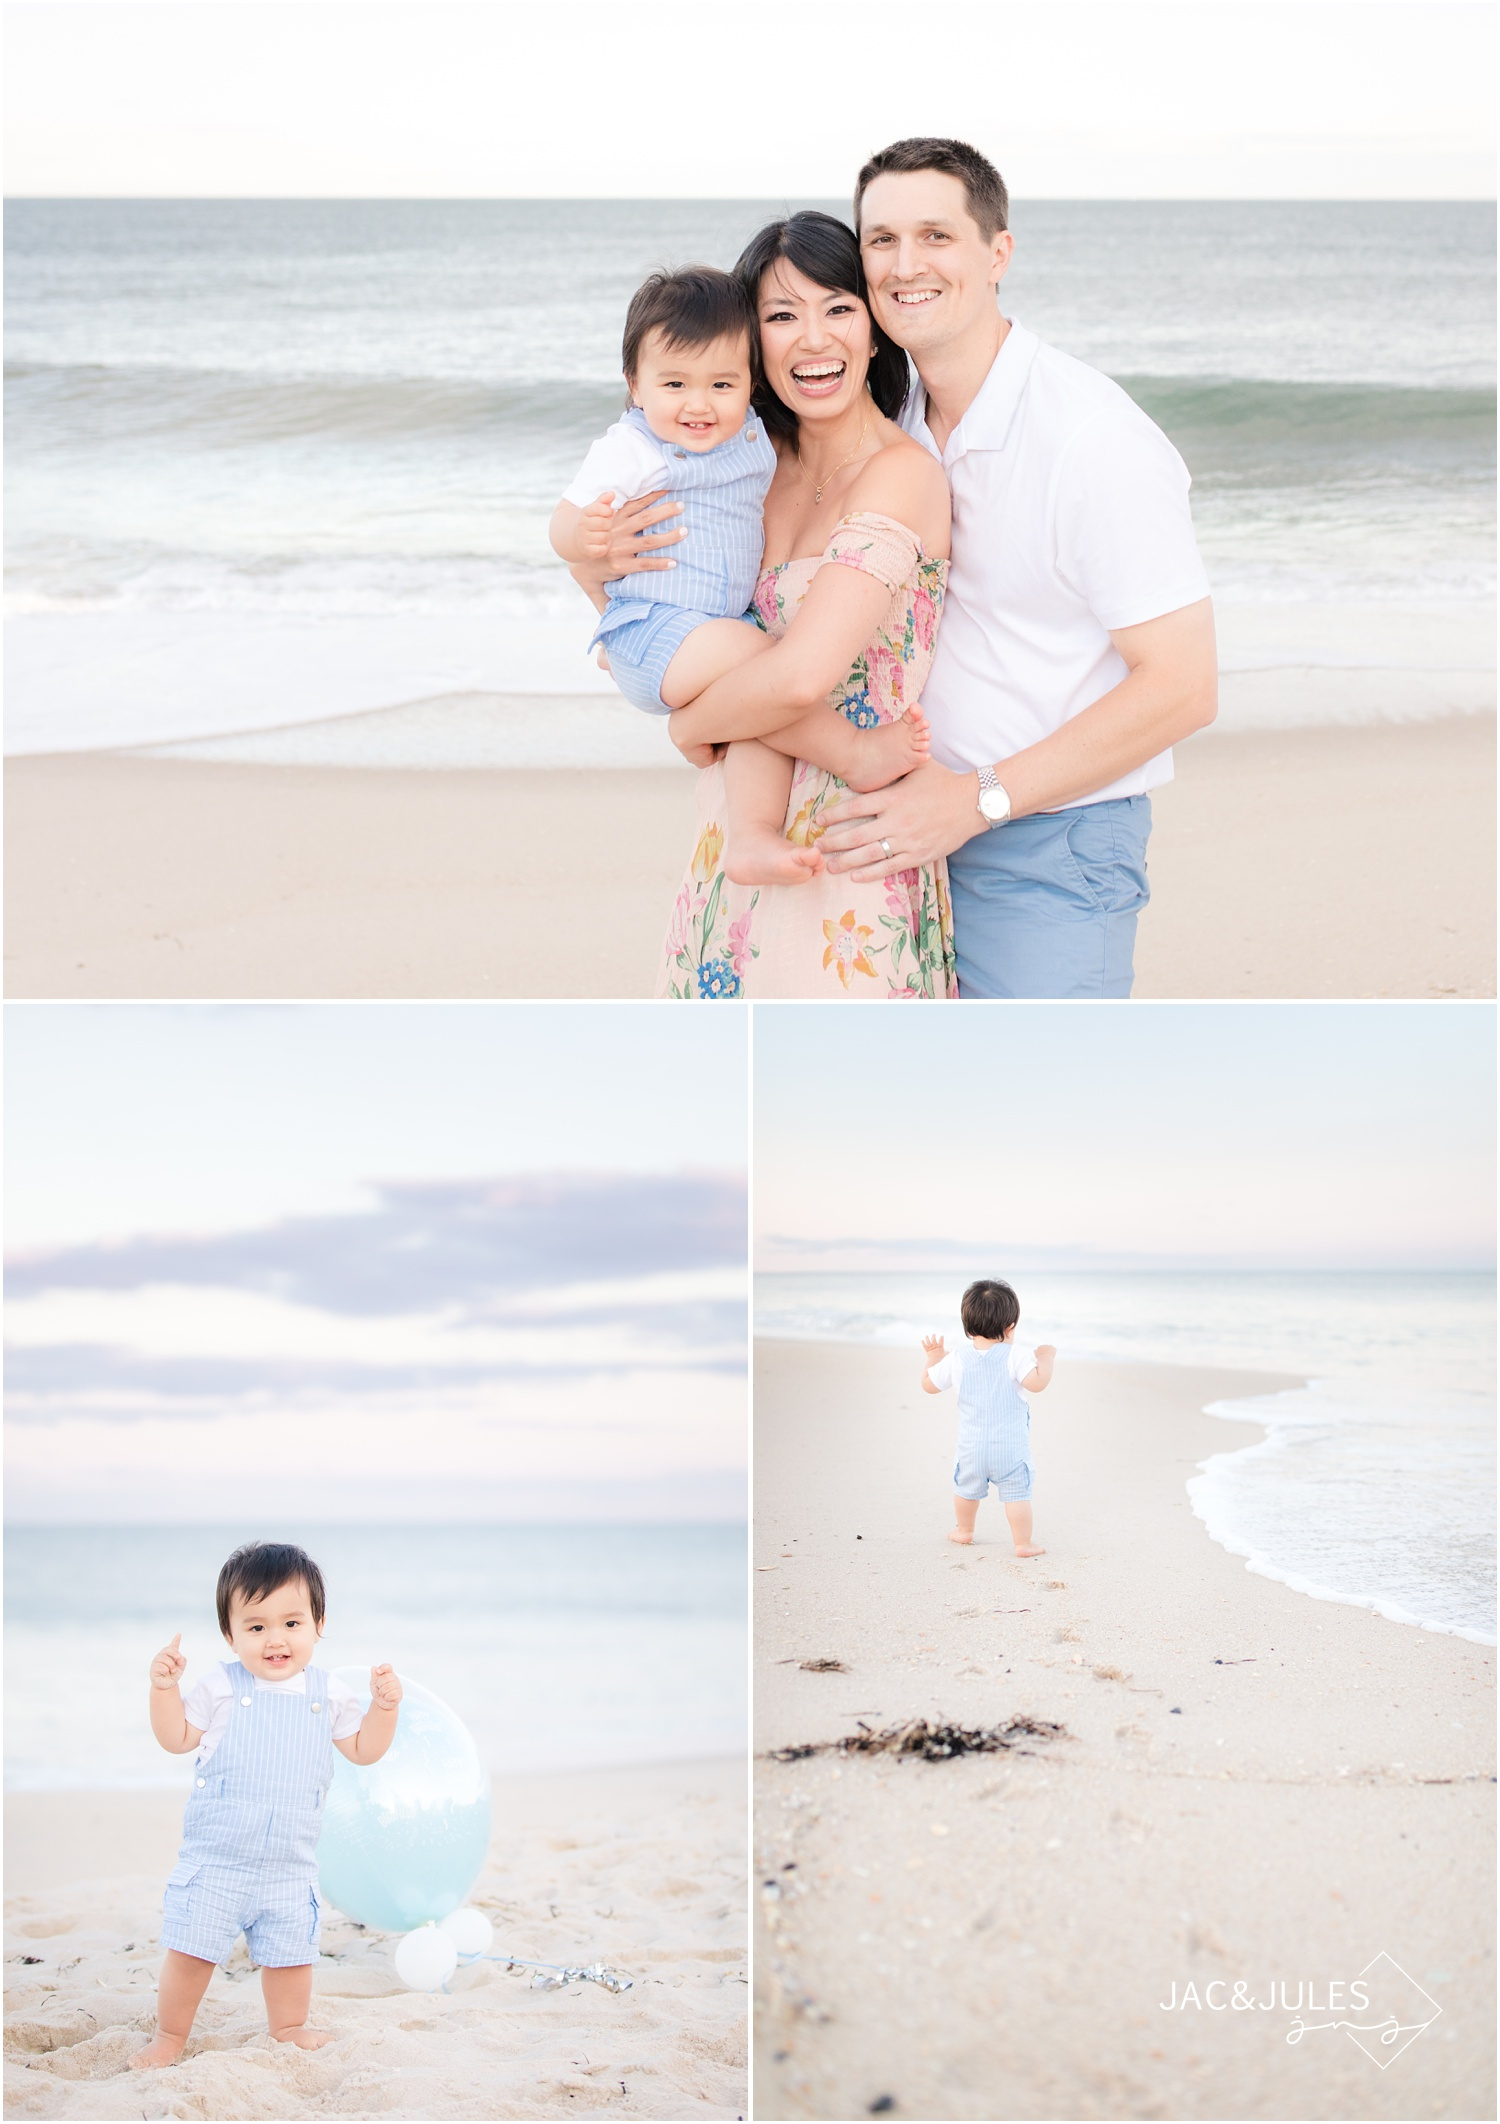 First birthday photos on the beach in Mantoloking, NJ.